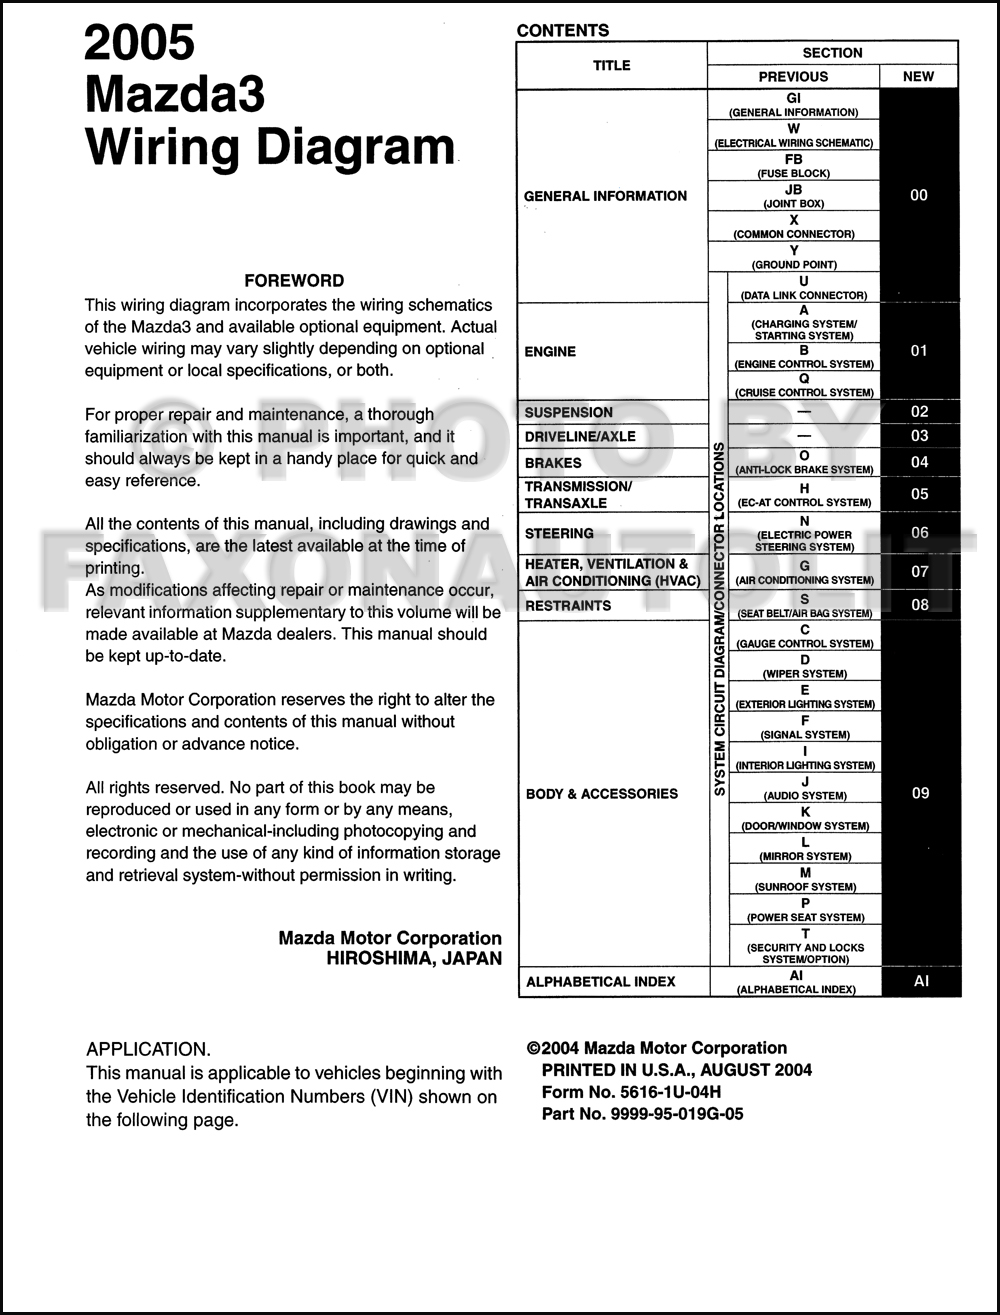 Wiring Diagram 2008 Mazda 3 : Mazda wiring diagram manual